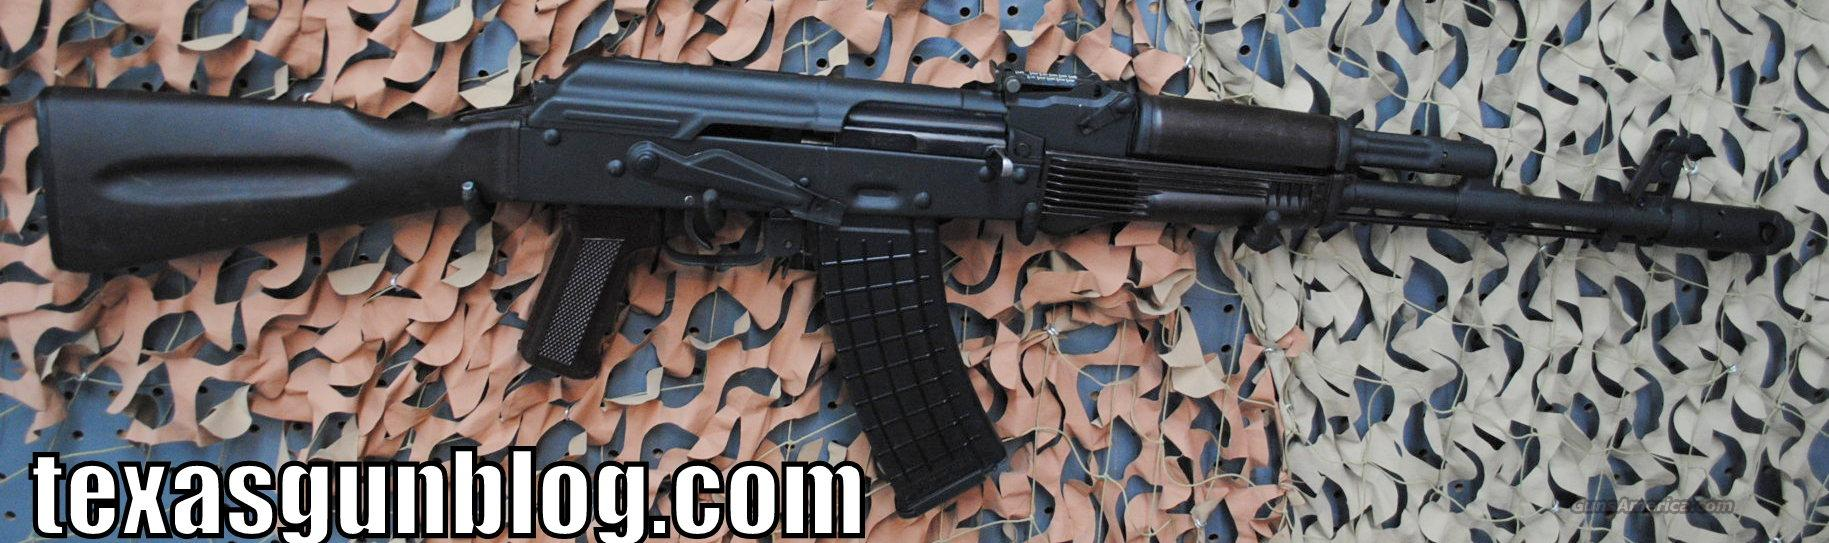 Nodak Spud CUSTOM NIB AK74 5.45 NOT CENTURY POLISH TANTAL  Guns > Rifles > AK-47 Rifles (and copies) > Full Stock